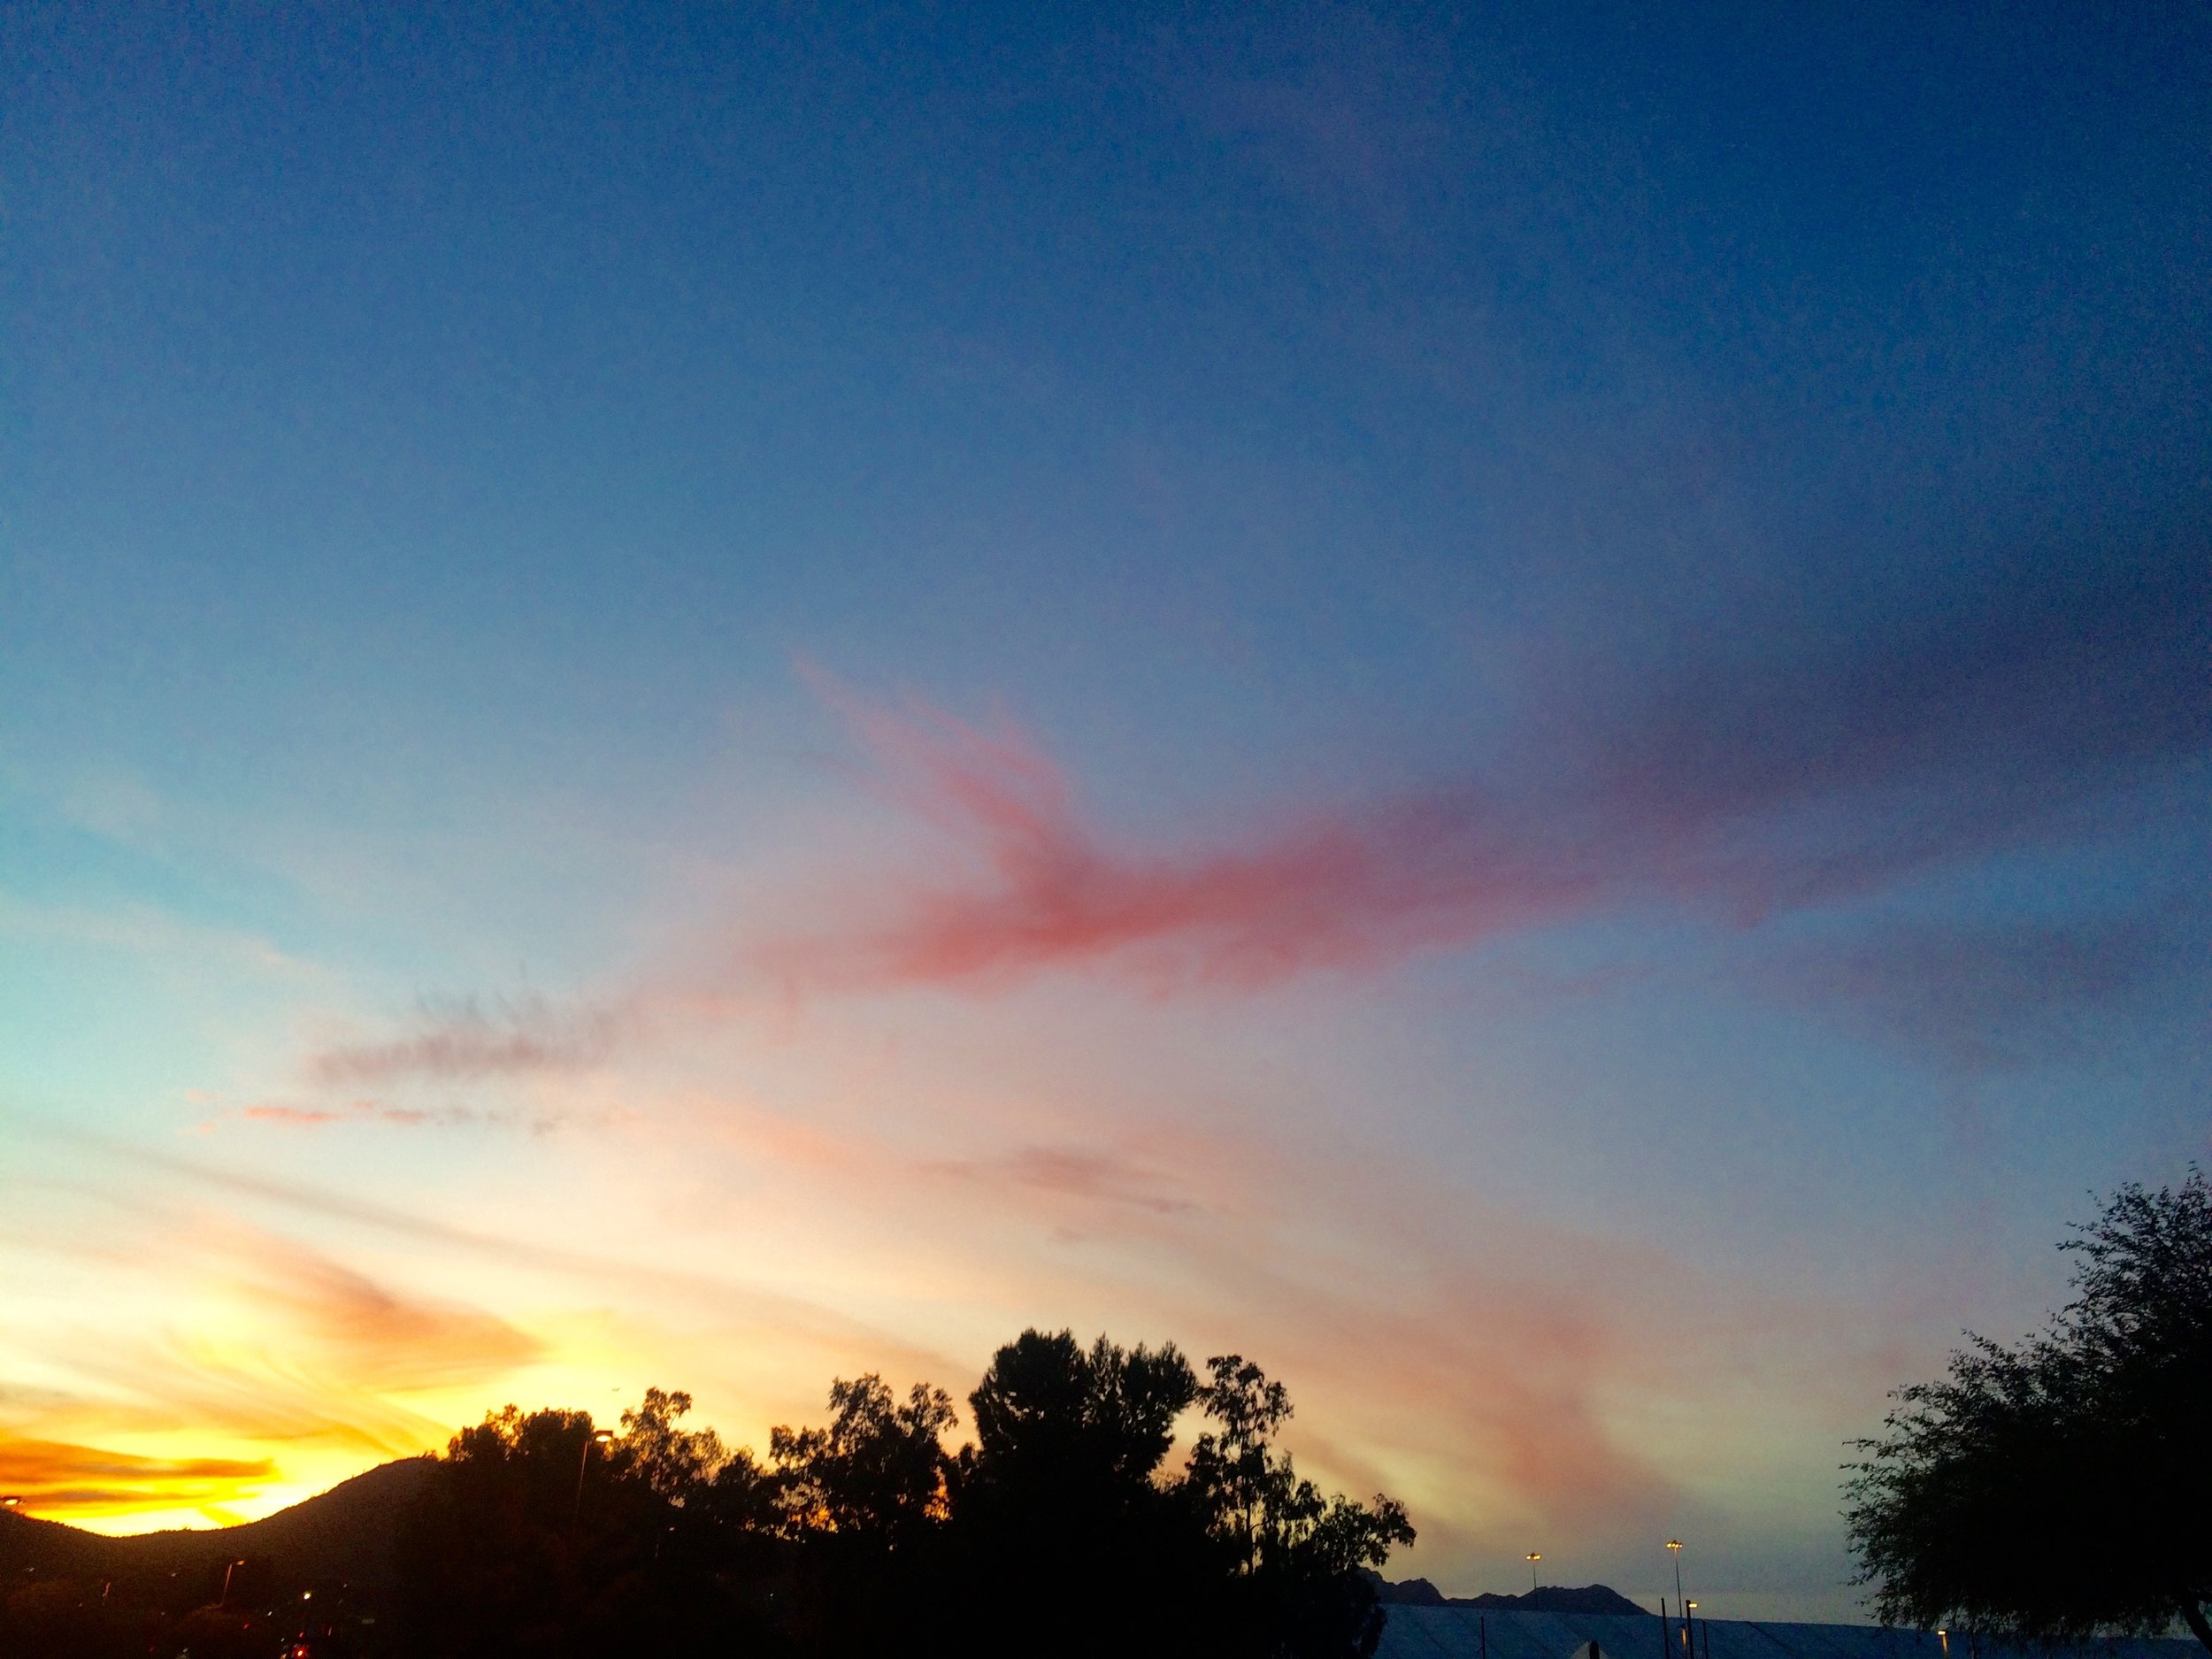 The sun sets over the GJX tent and Tucson mountains